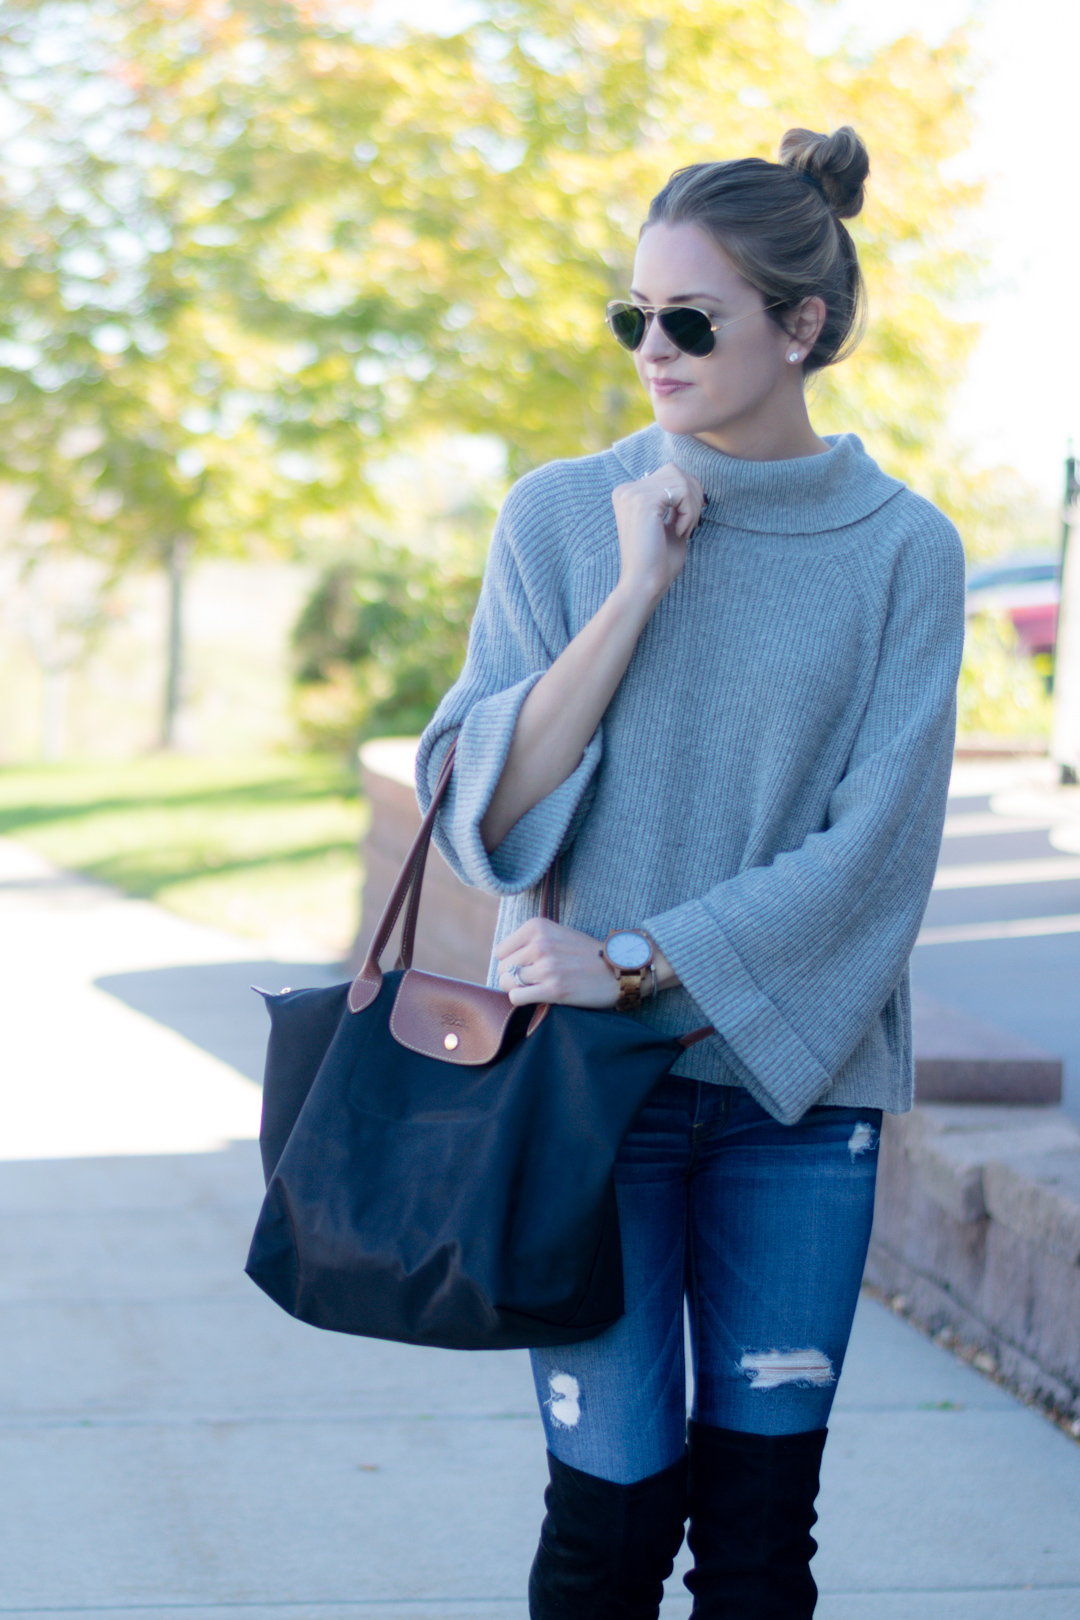 nordstrom leith cowl neck pullover, fall 2016 outfit, gray turtleneck outfit, wood watches, fall accessories, jord watch, frankie series watch